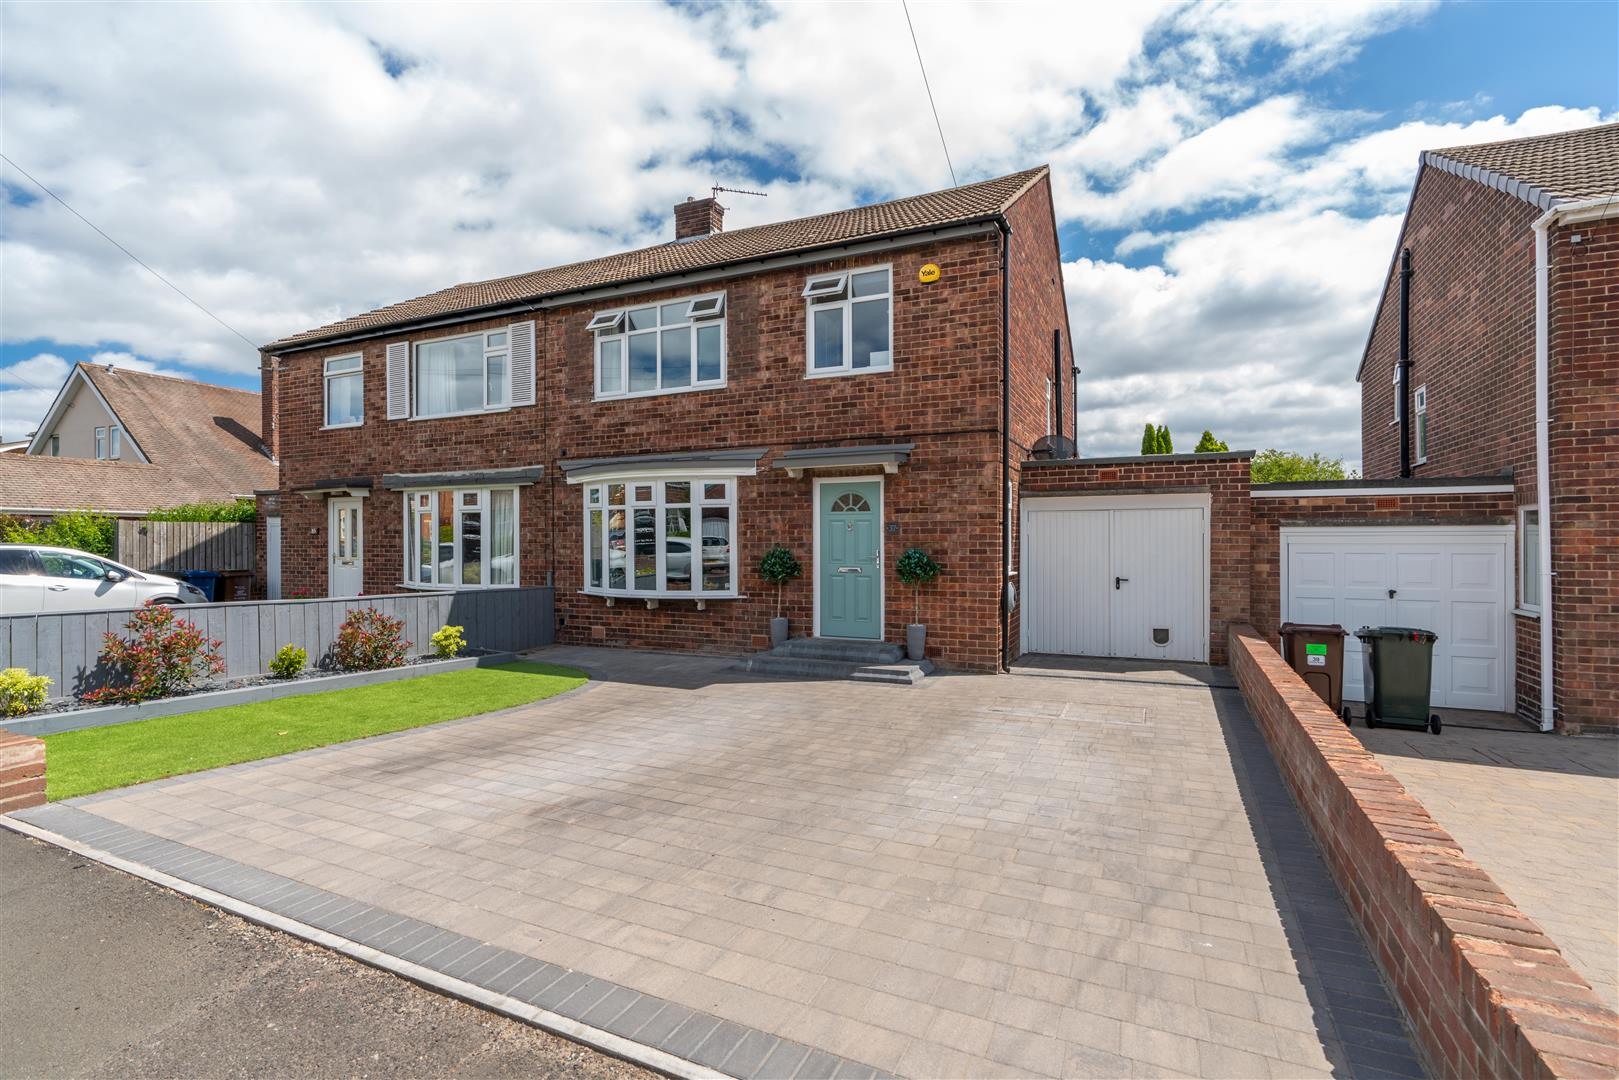 3 bed semi-detached house for sale in Princes Road, Newcastle Upon Tyne  - Property Image 1